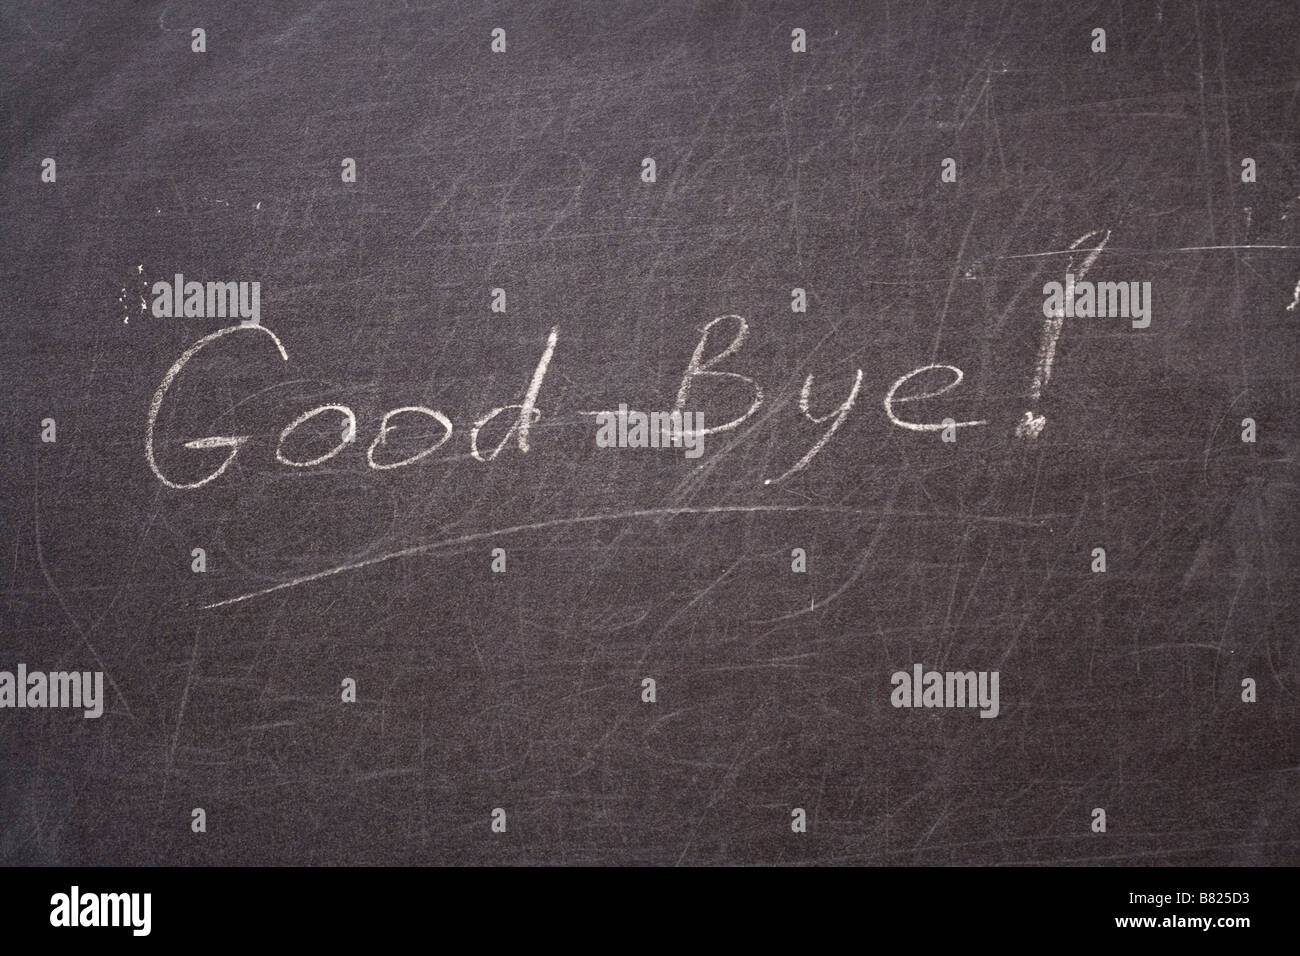 Good bye Word written on school board - Stock Image